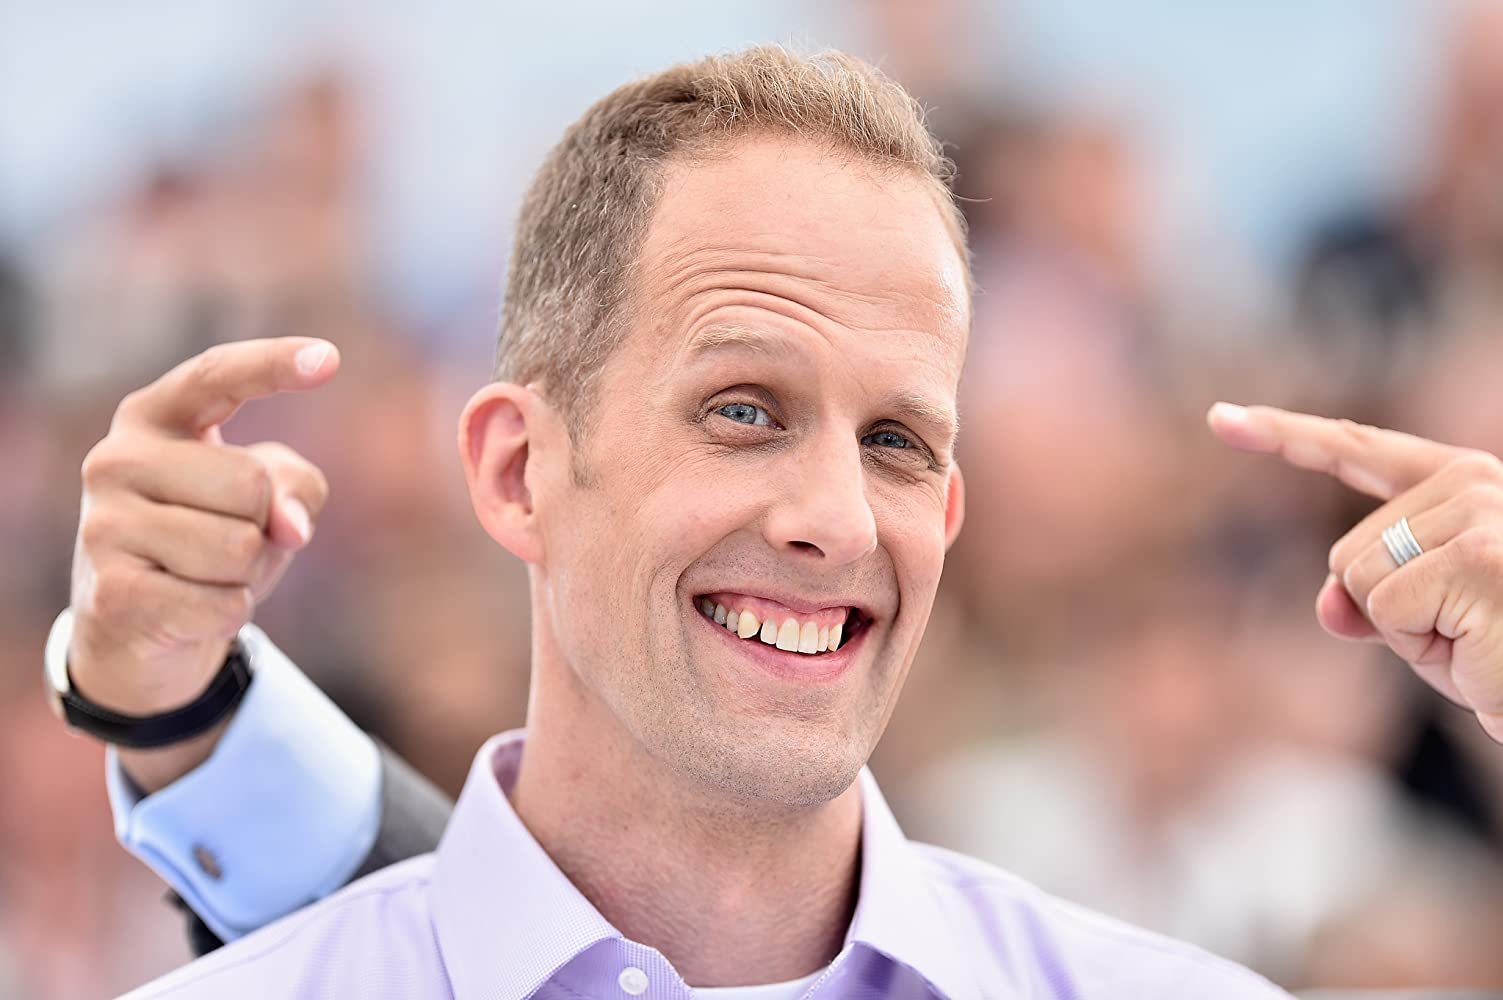 Pete Docter at an event for Inside Out (2015)